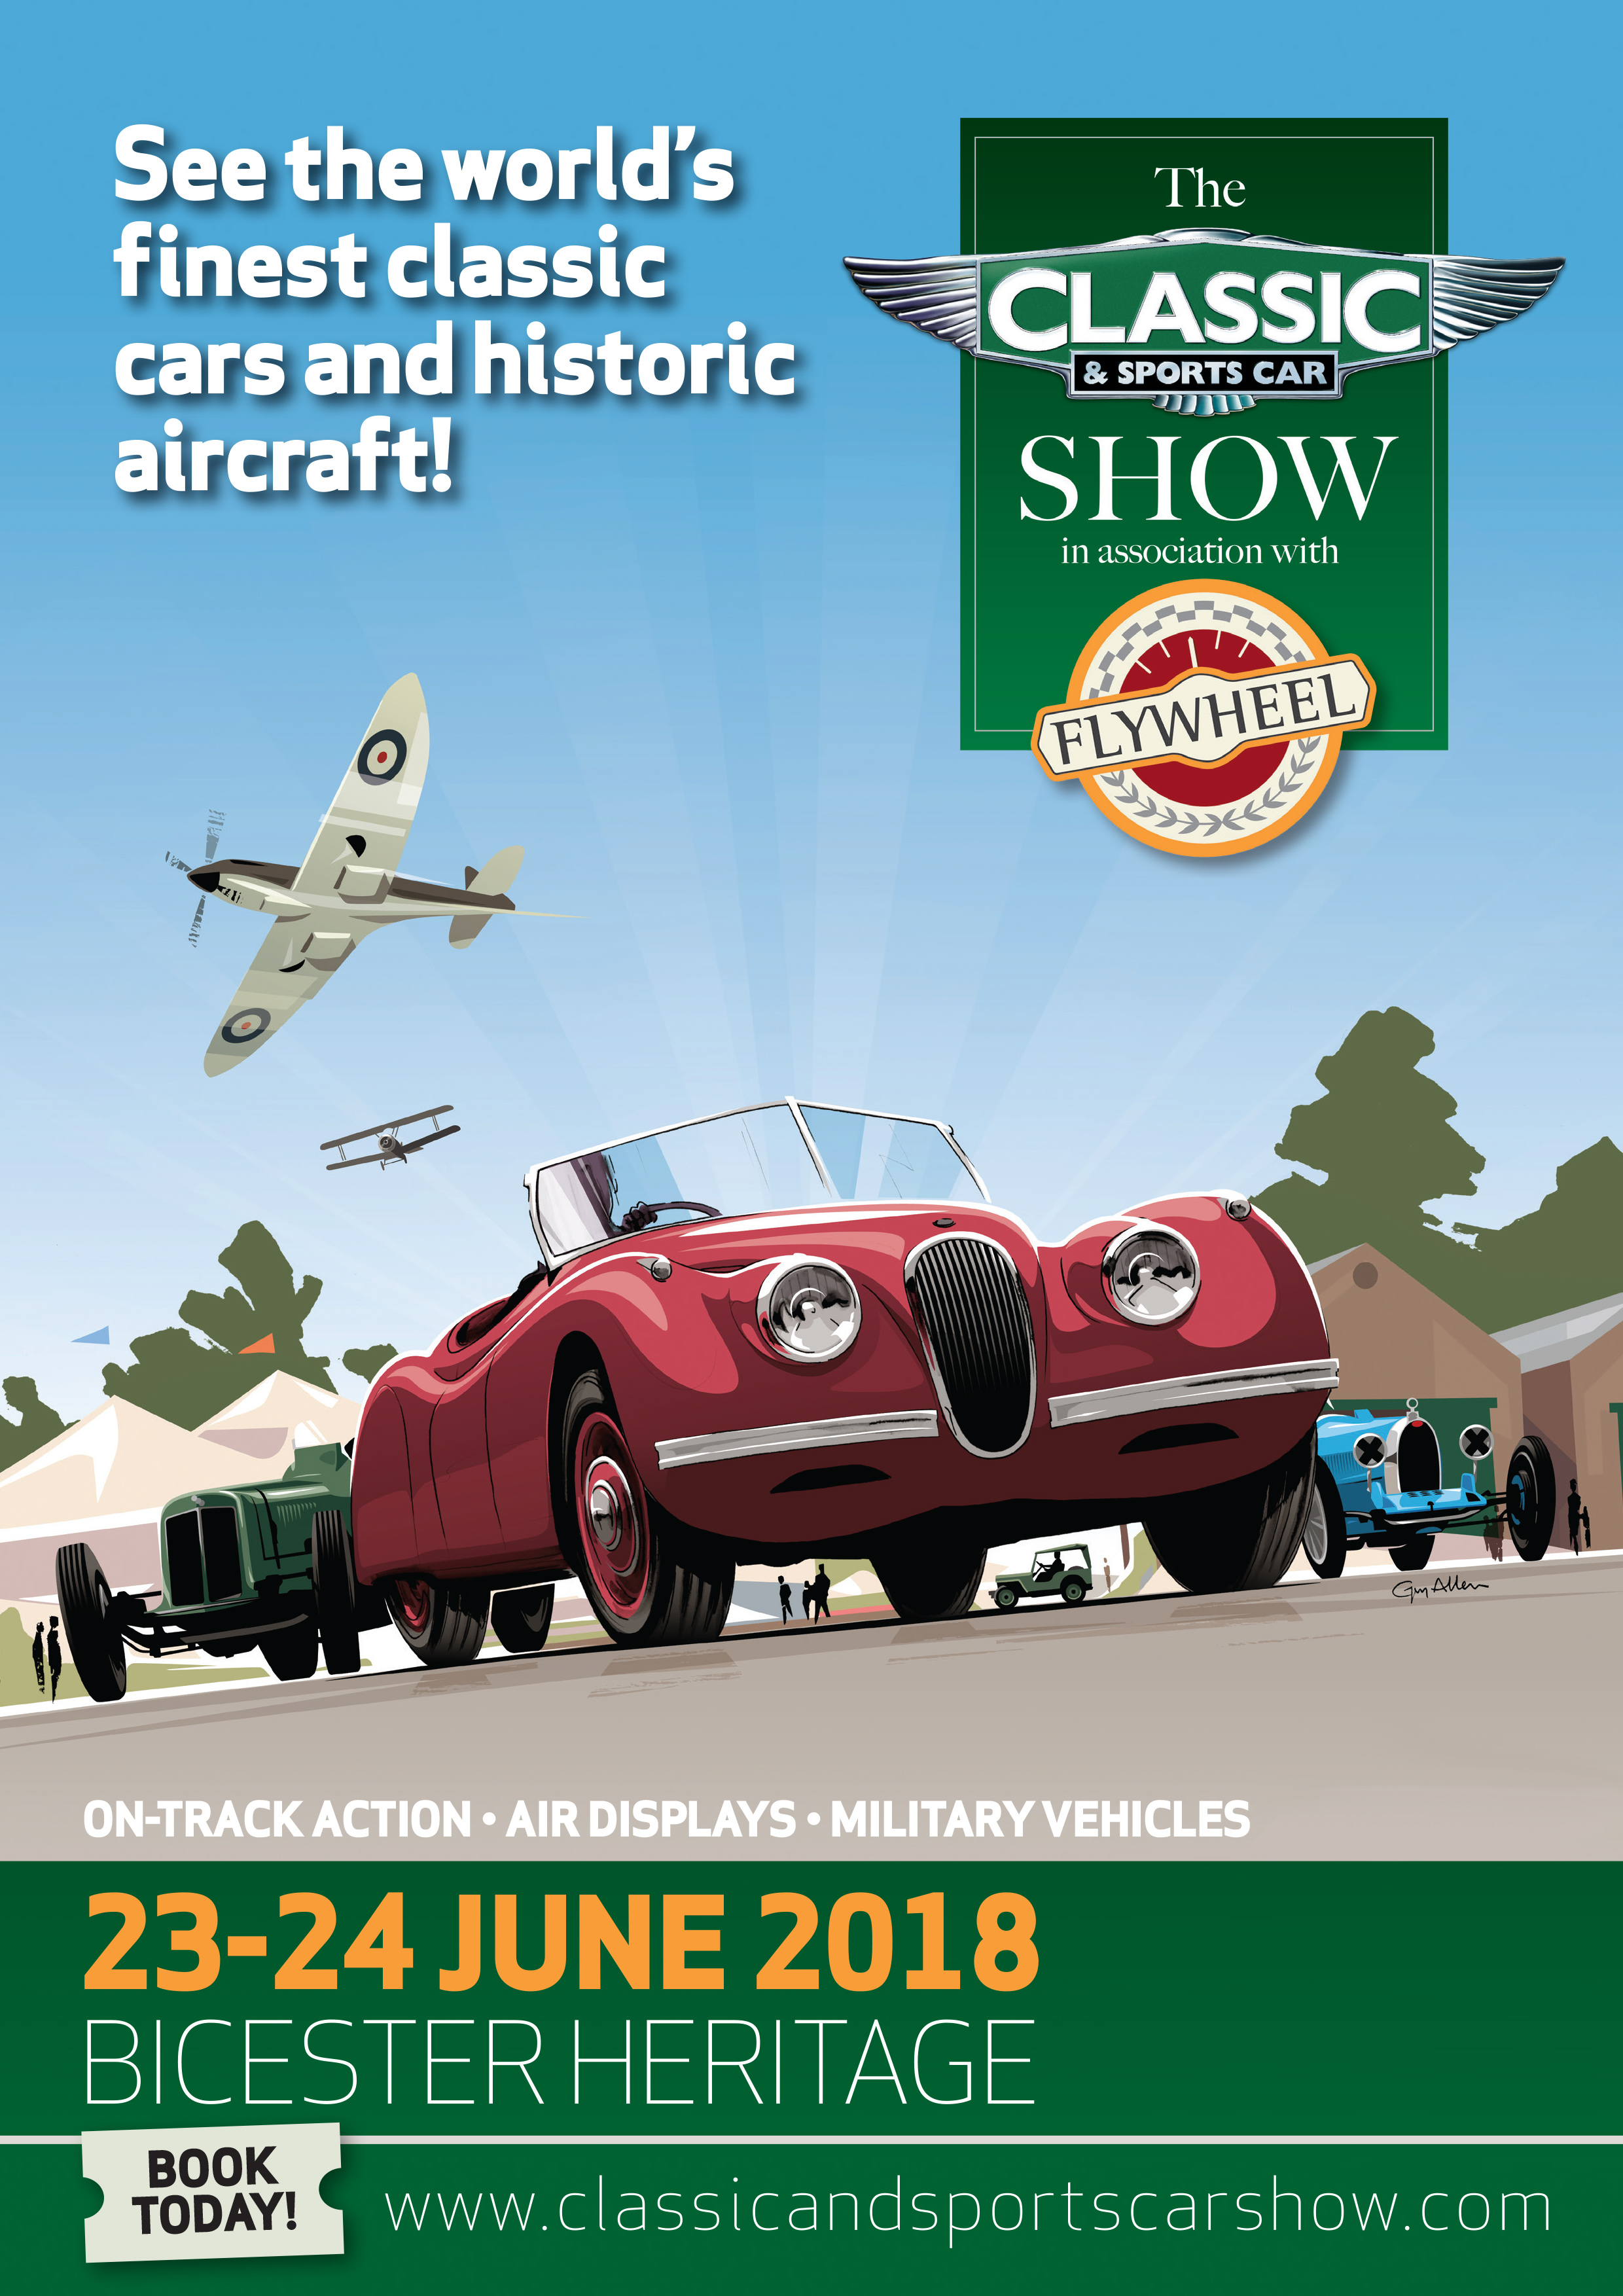 Classic & Sports Car Show in association with Flywheel